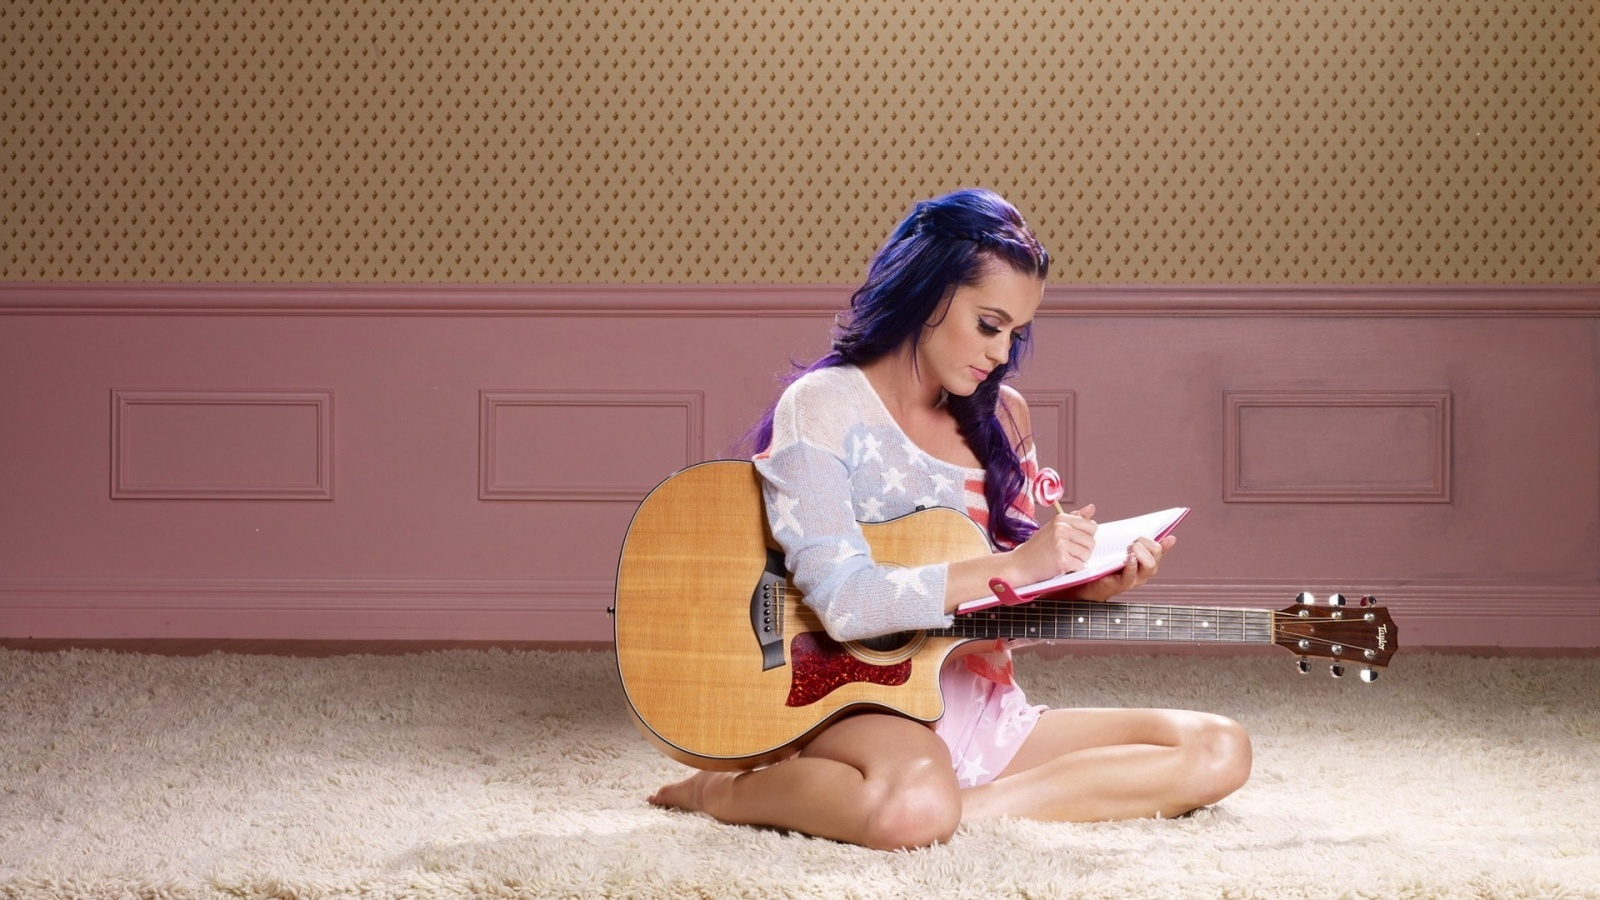 Description: The Wallpaper above is Katy perry songwriter Wallpaper in Resolution 1600x900. Choose your Resolution and Download Katy perry songwriter ...